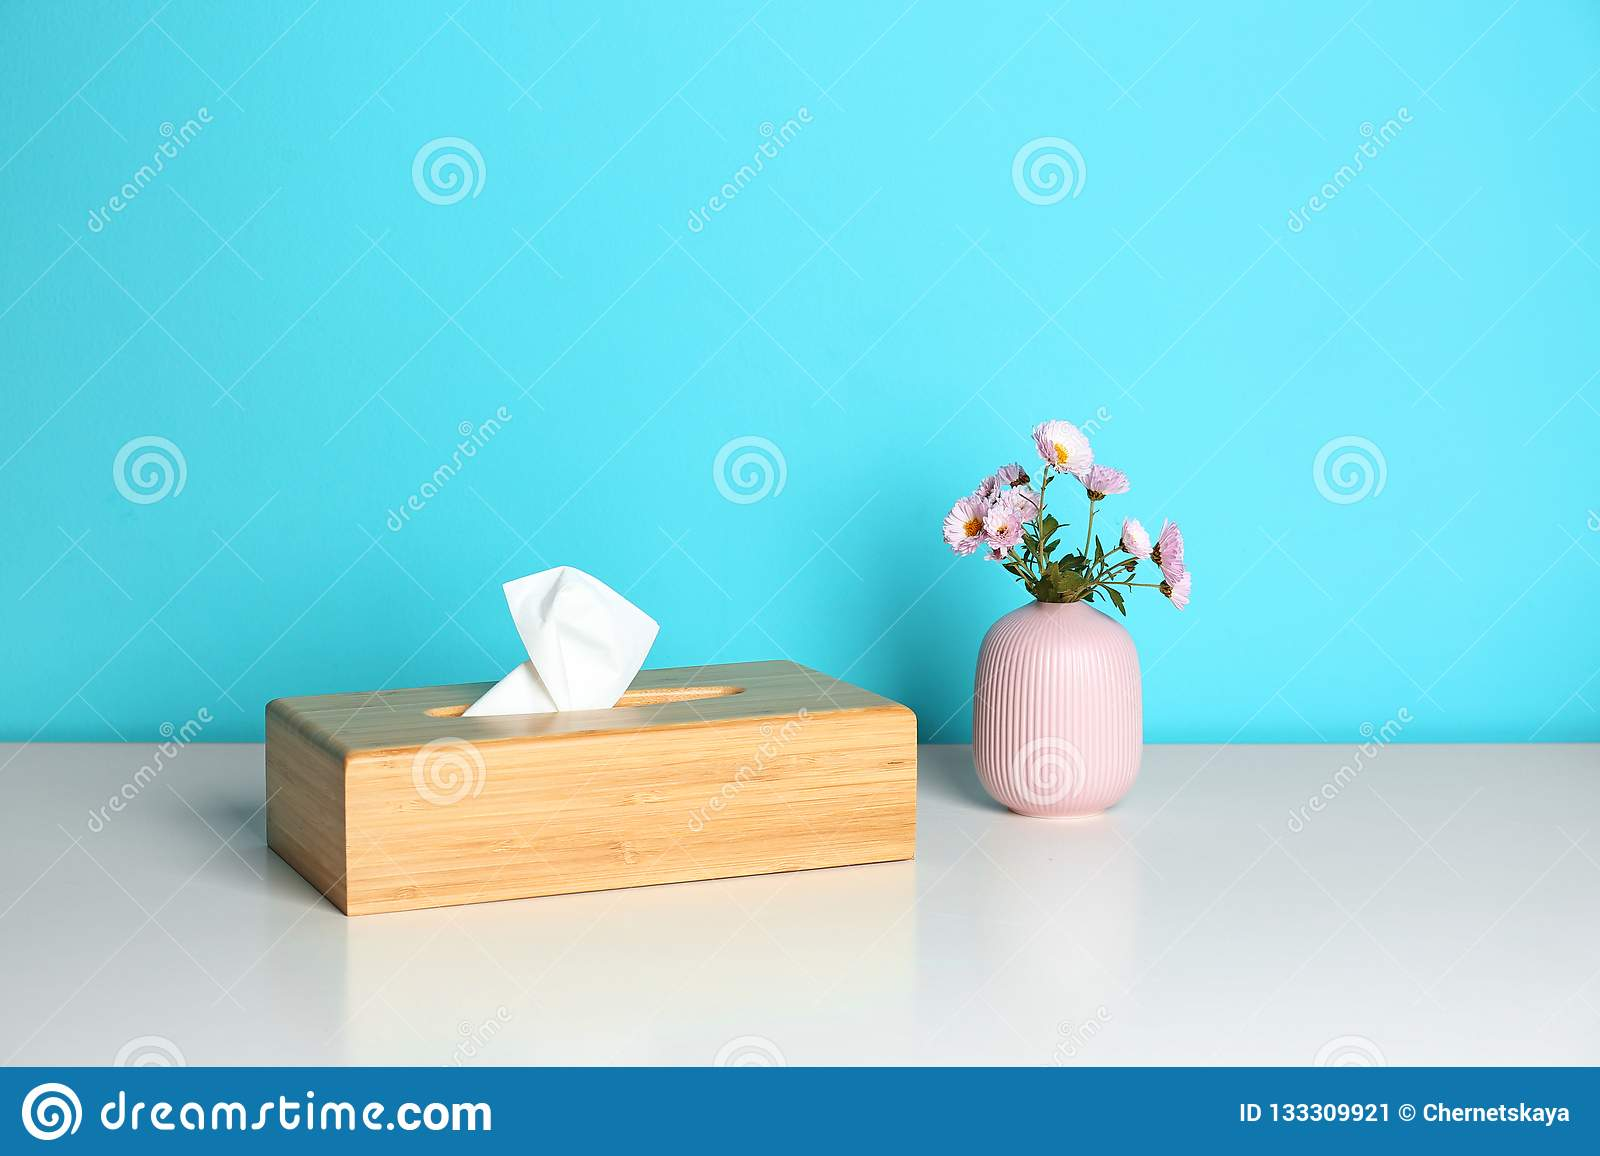 Wooden Napkin Holder With Paper Serviettes And Flowers In Small Vase Stock Image Image Of Dinner Napkins 133309921